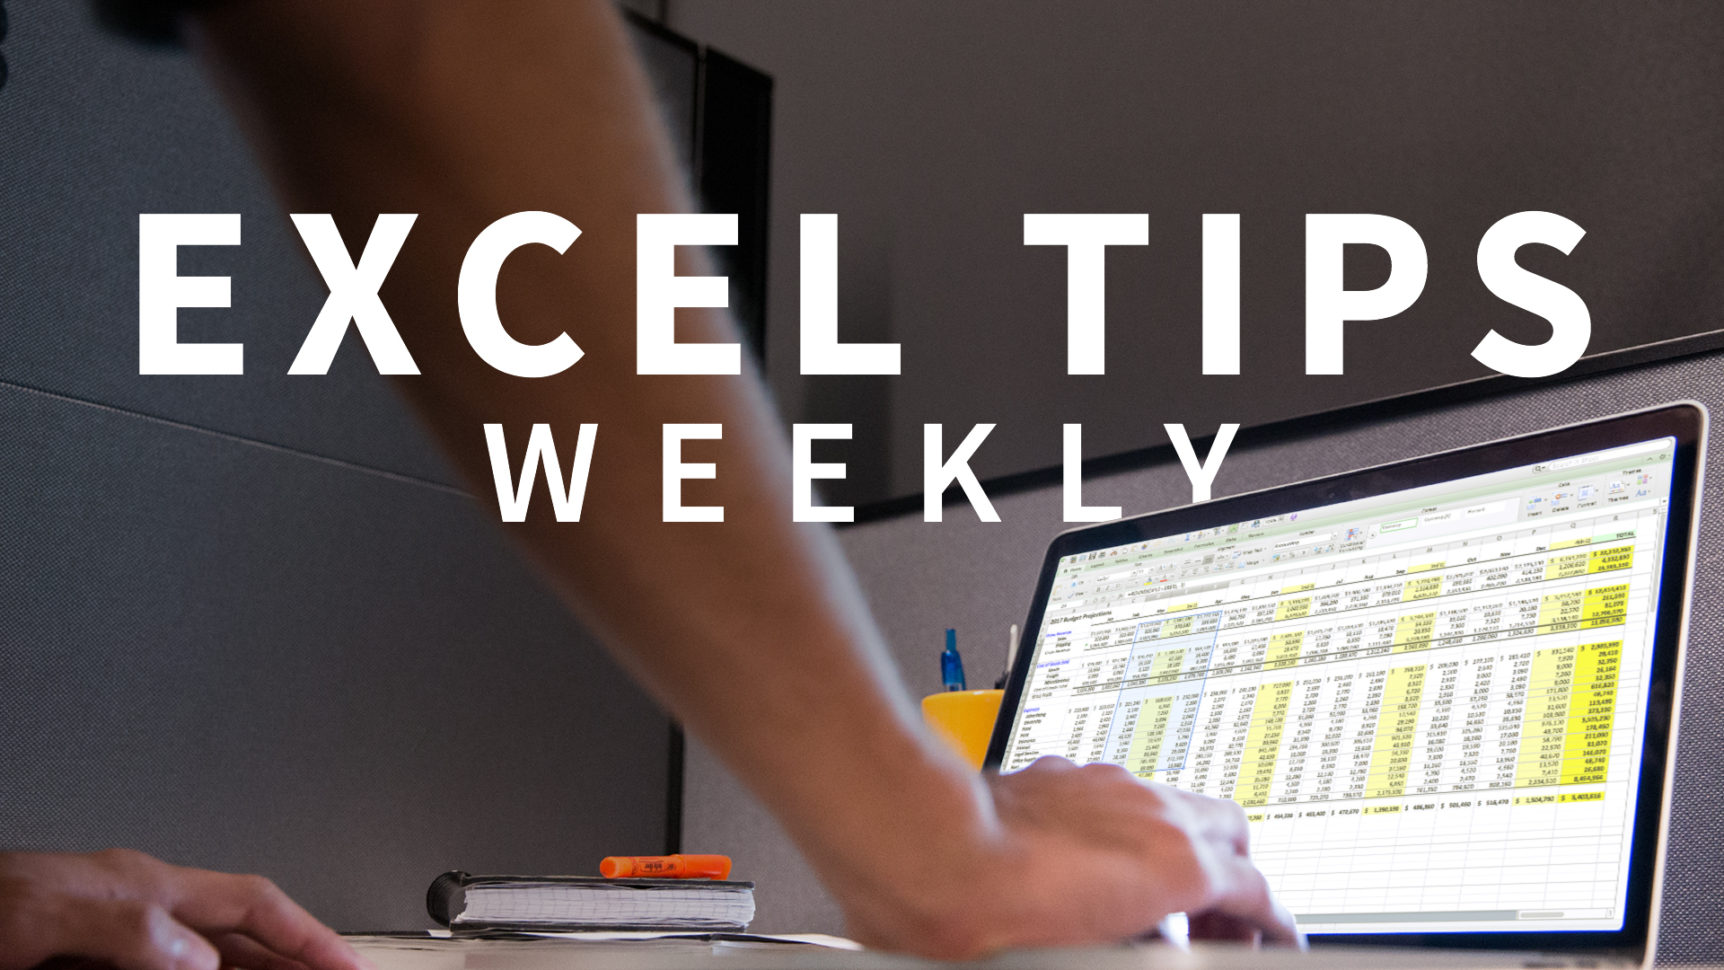 Excel Tips Weekly Inside Excel Spreadsheet Course